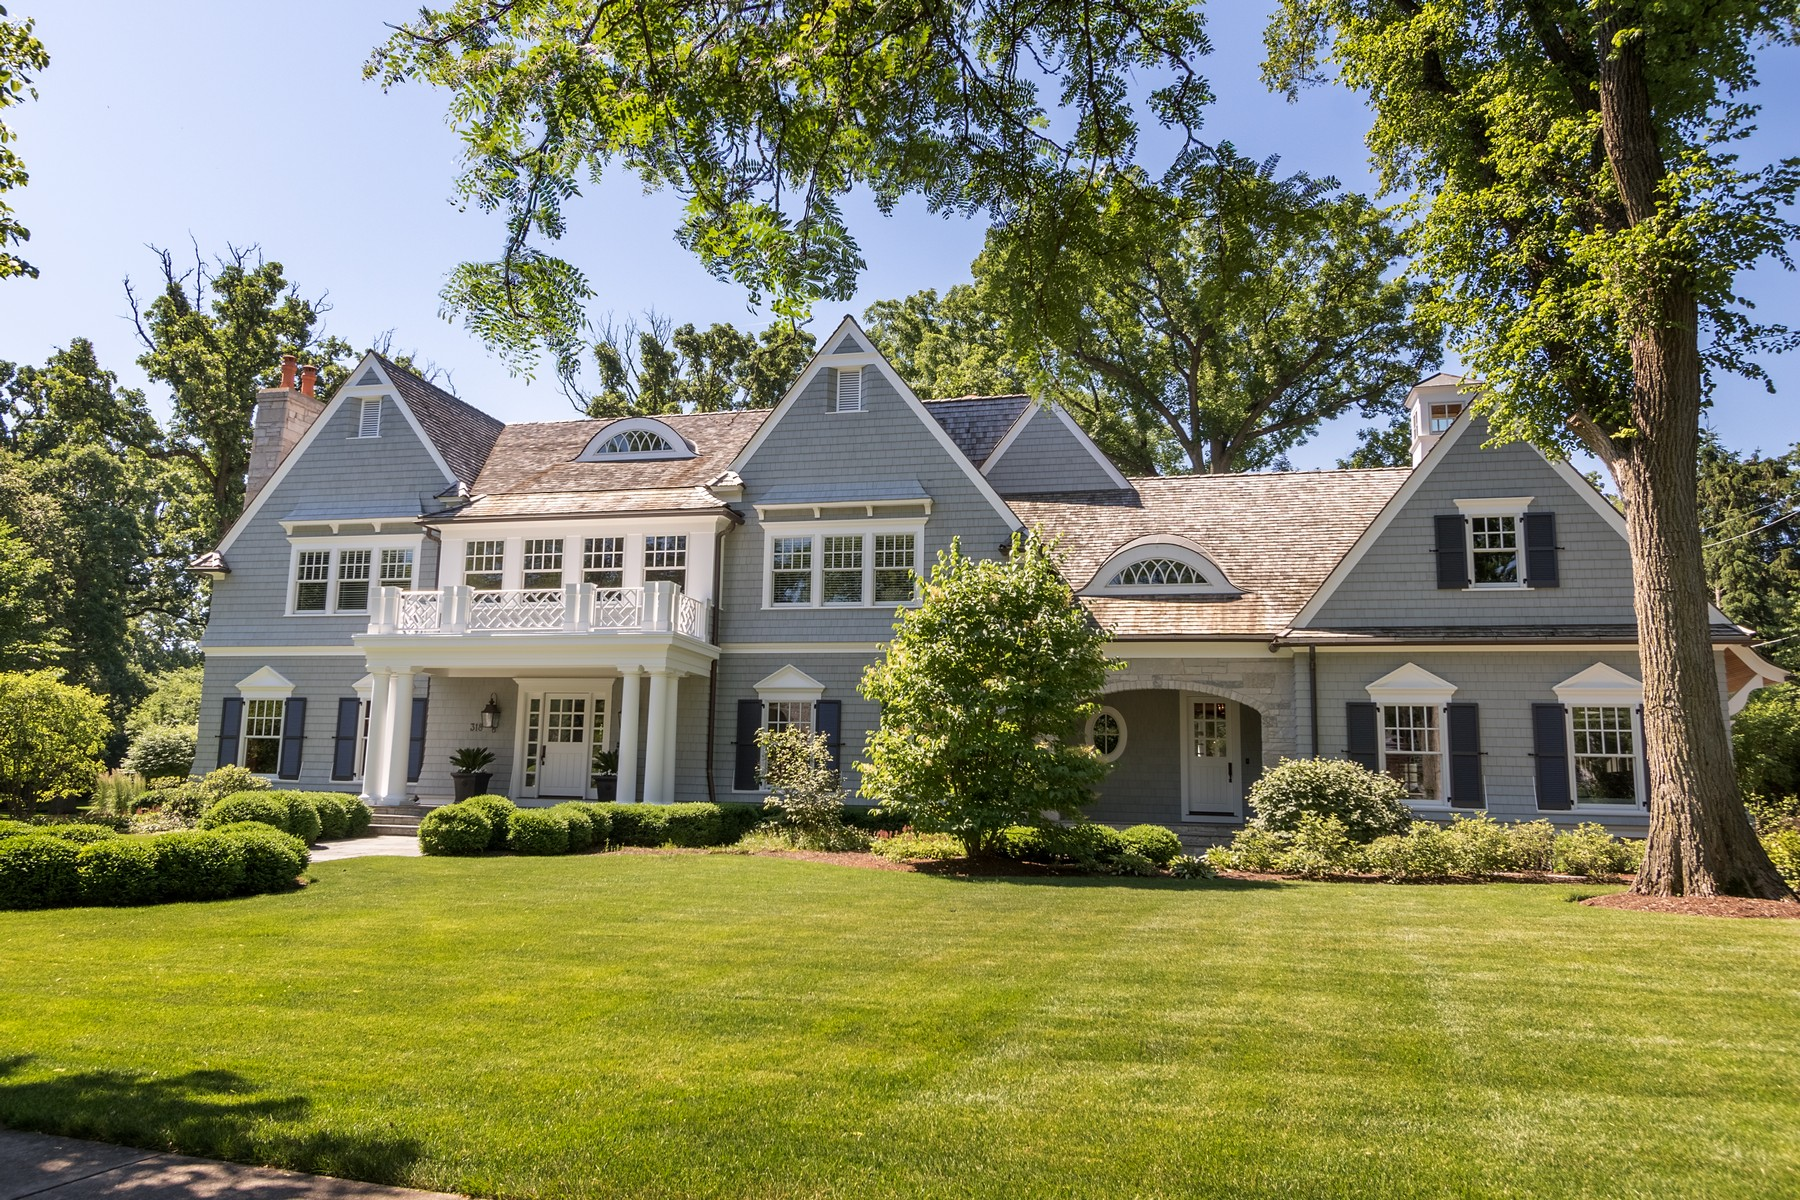 Single Family Home for Sale at Stunning Shingle style home 318 Hillcrest Avenue Hinsdale, Illinois 60521 United States